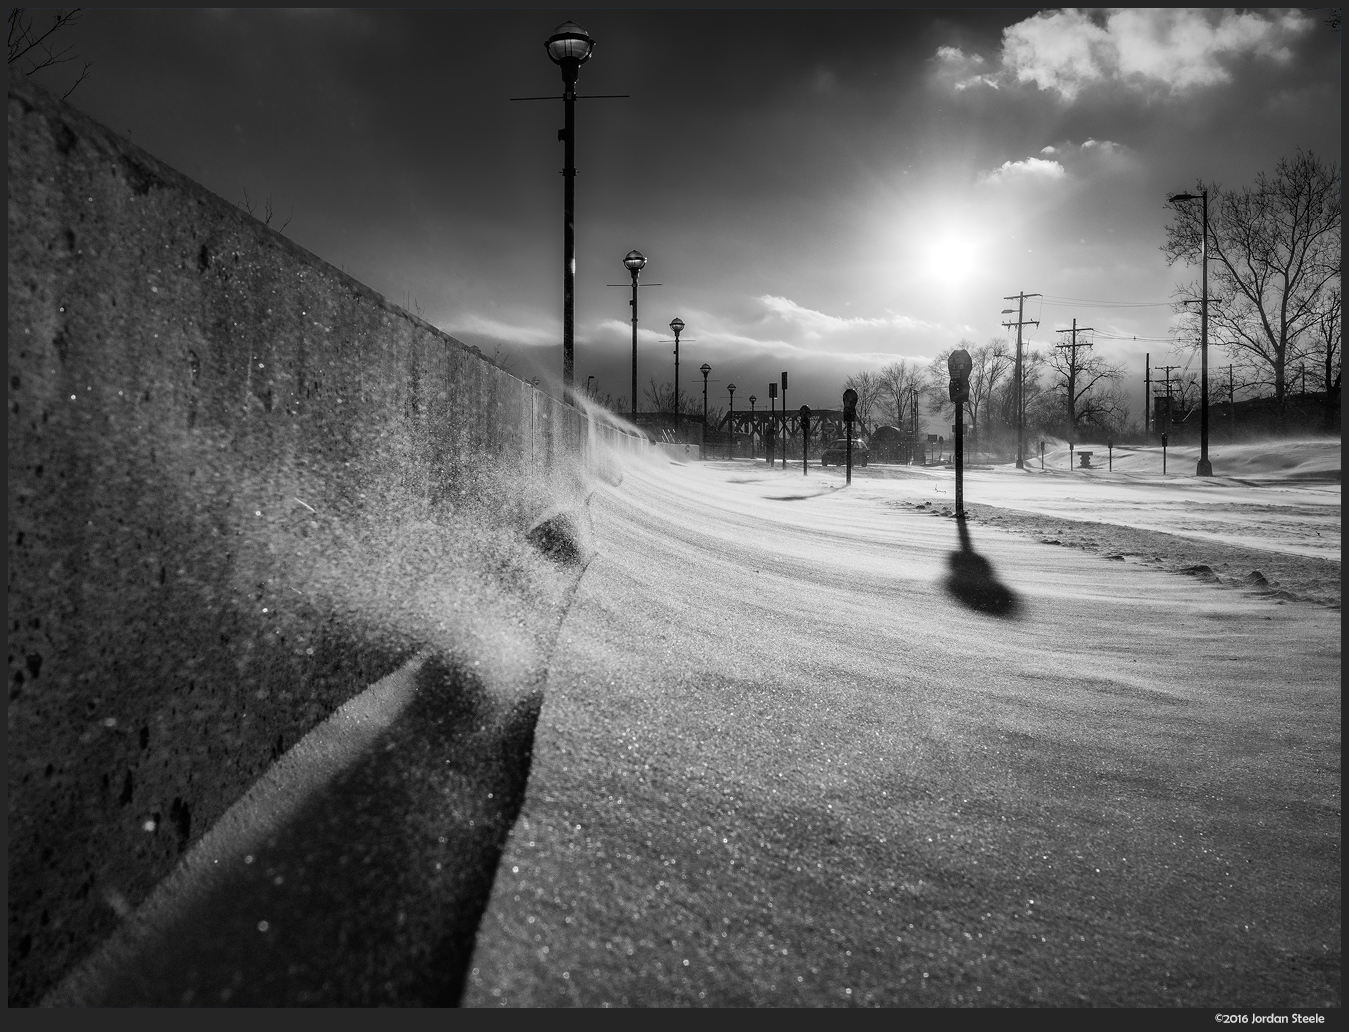 Snow Drift - Sony A7 II with Sony FE 16-35mm f/4 @